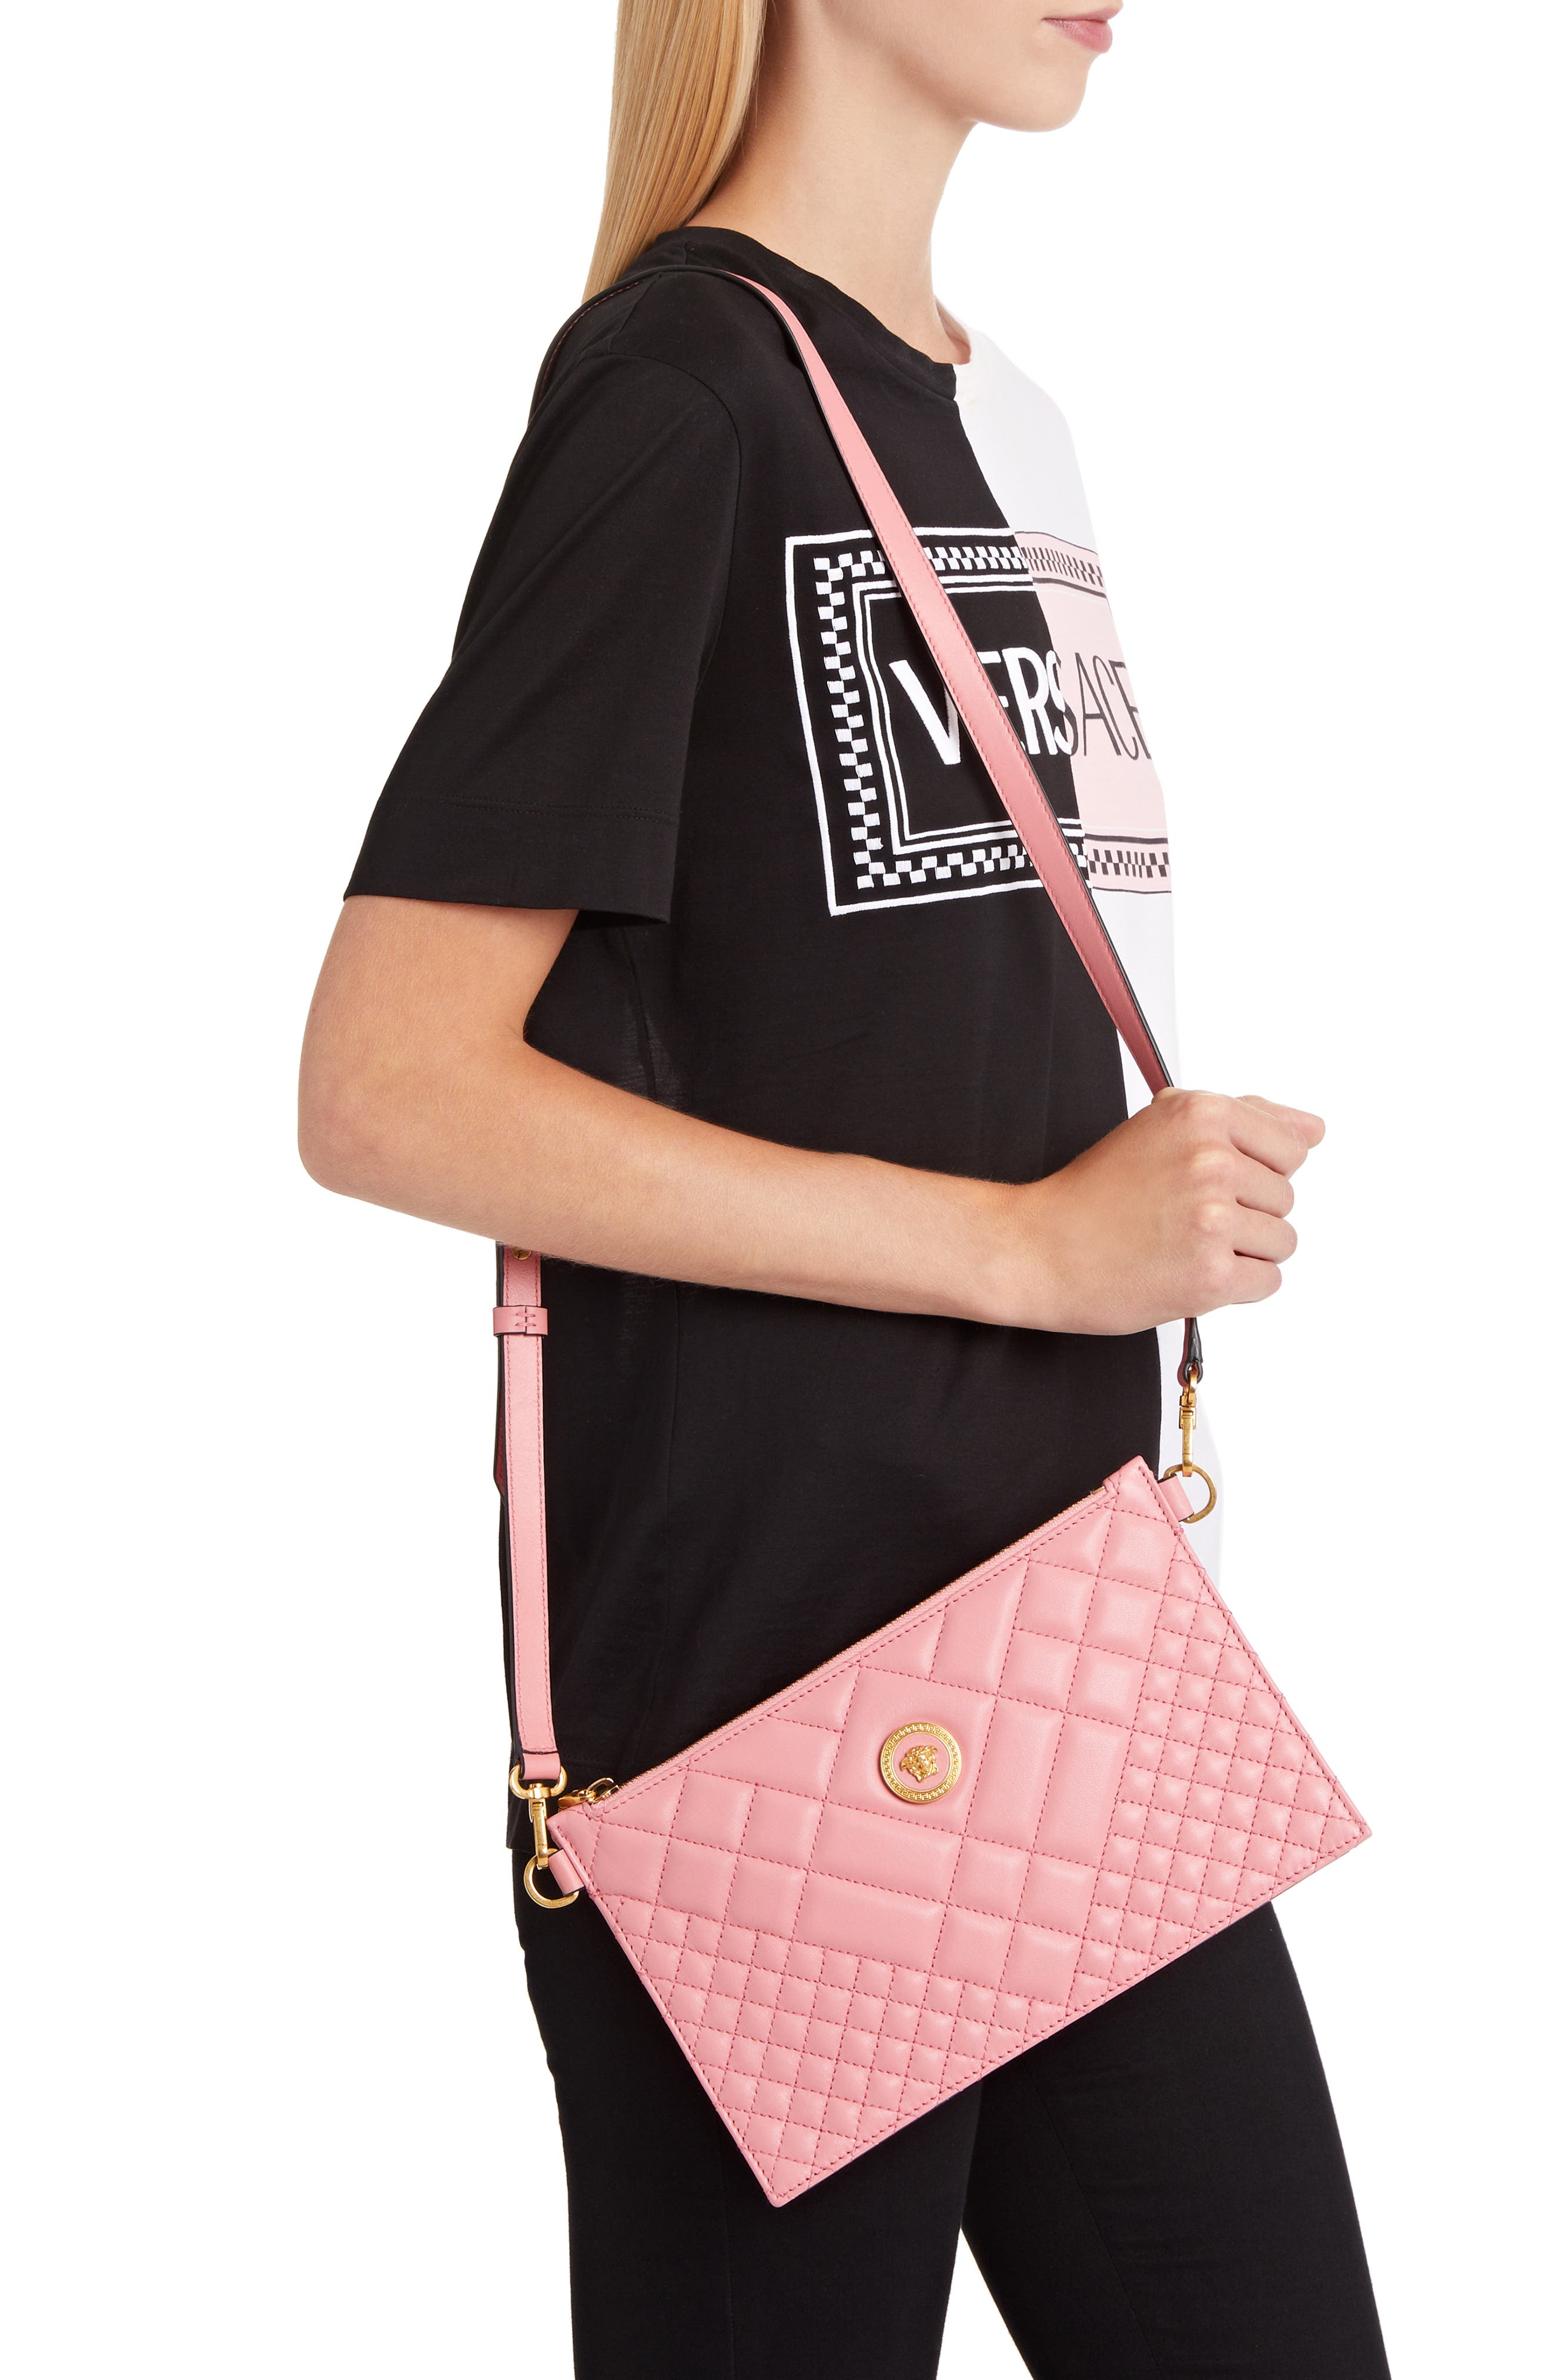 VERSACE, Tribute Icon Quilted Leather Pouch, Alternate thumbnail 2, color, SHELL PINK/ TRIBUTE GOLD